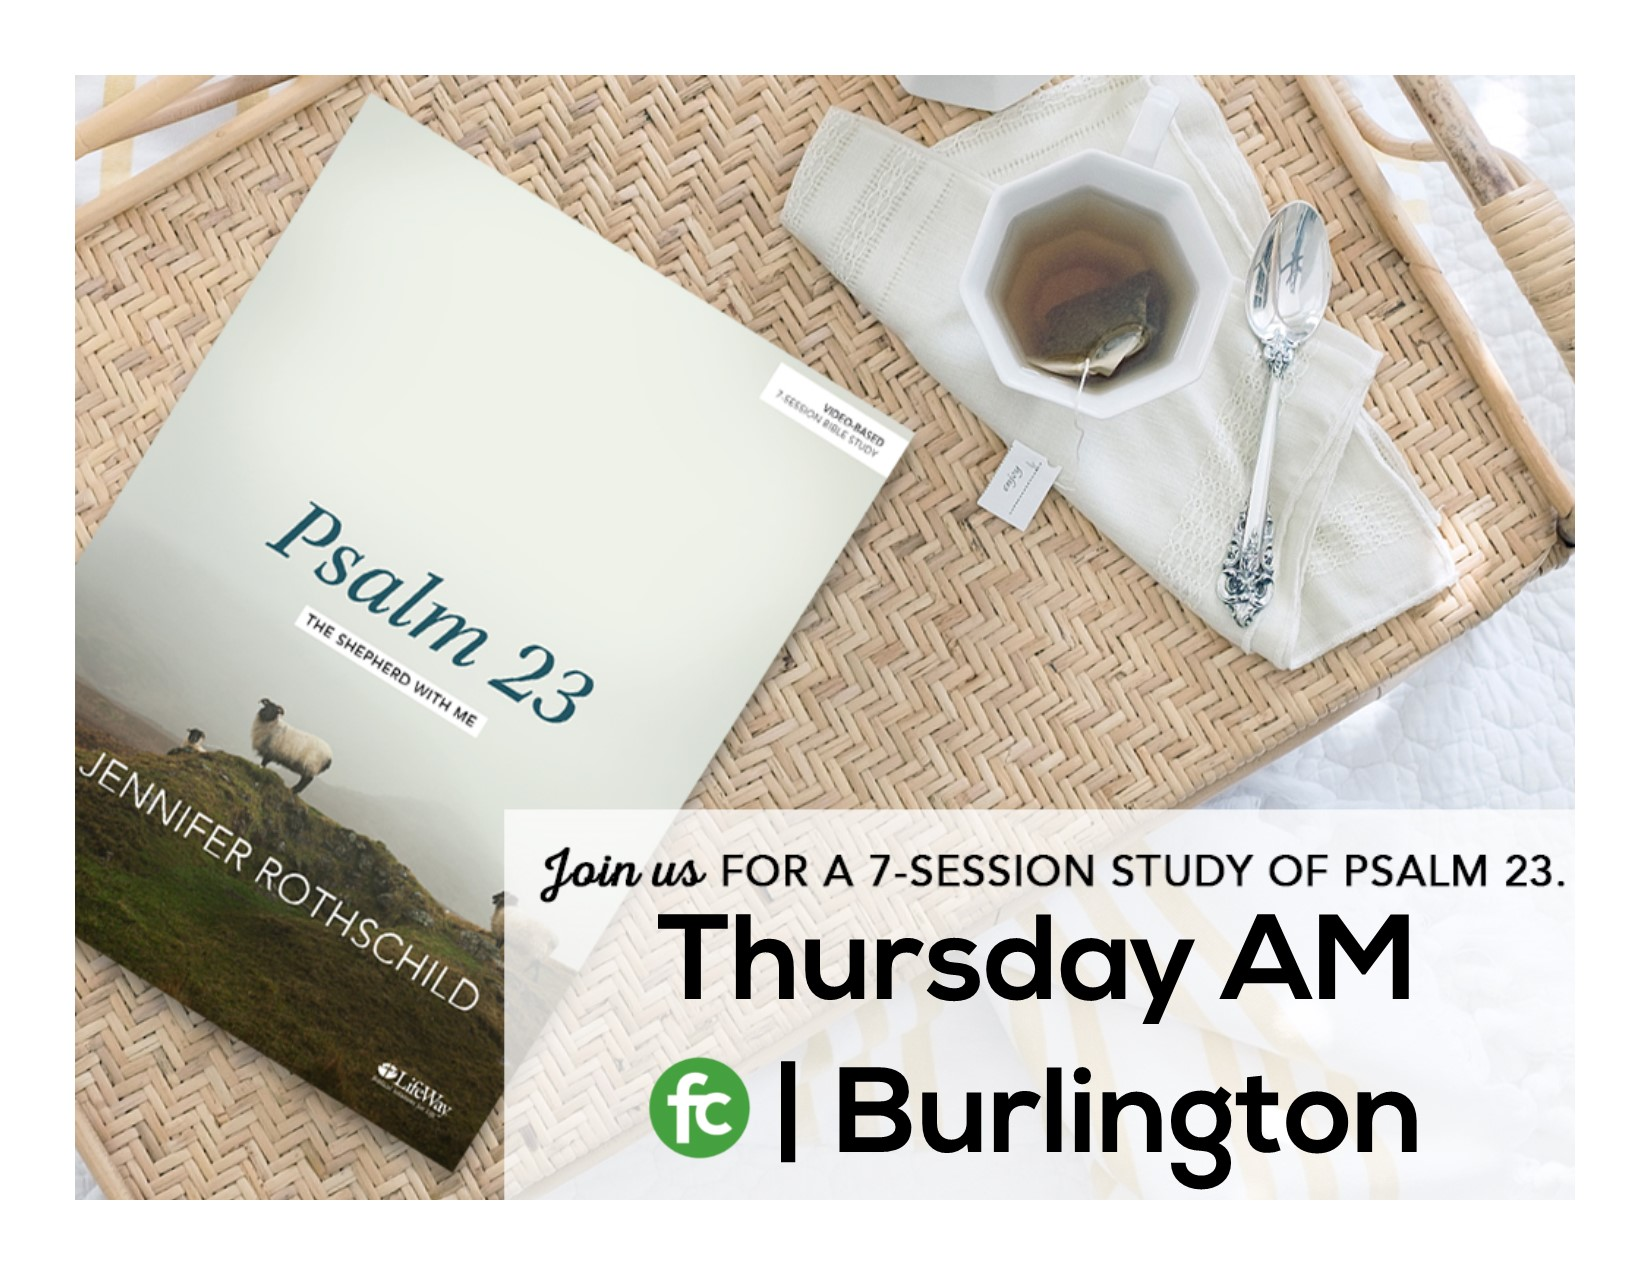 Thurs burl am psalm 23